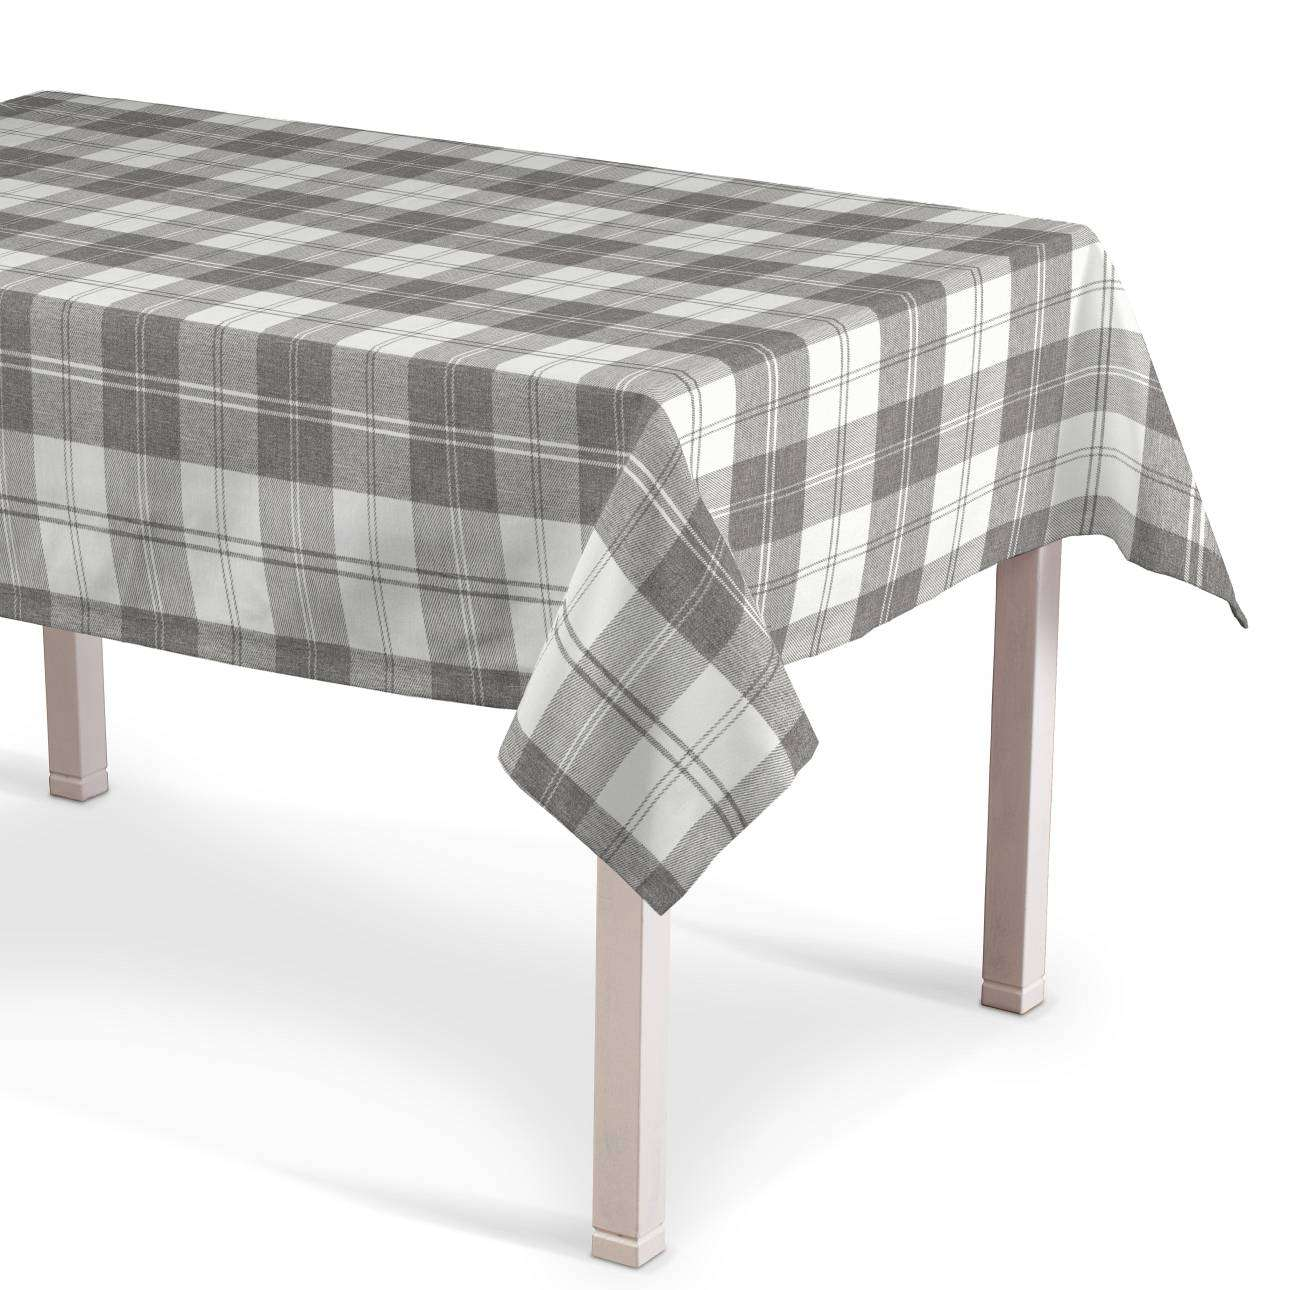 Rectangular tablecloth 130 x 130 cm (51 x51 inch) in collection Edinburgh, fabric: 115-79